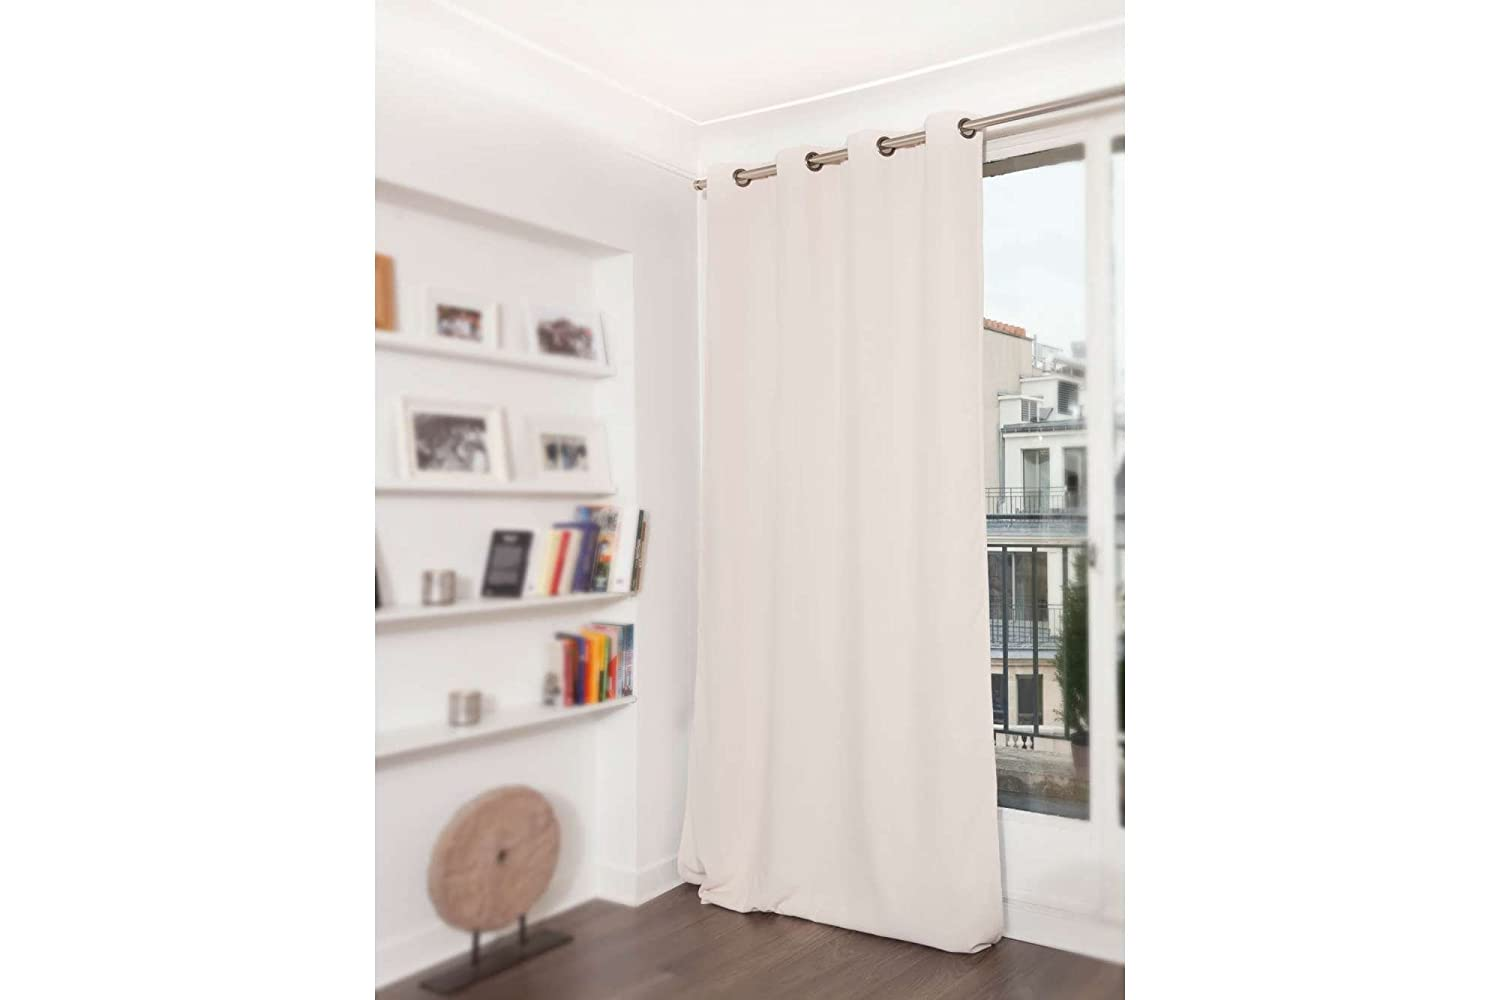 Amazon.com: Moondream Soundproof Curtain, 3-in-1 Sound-Blackout ...